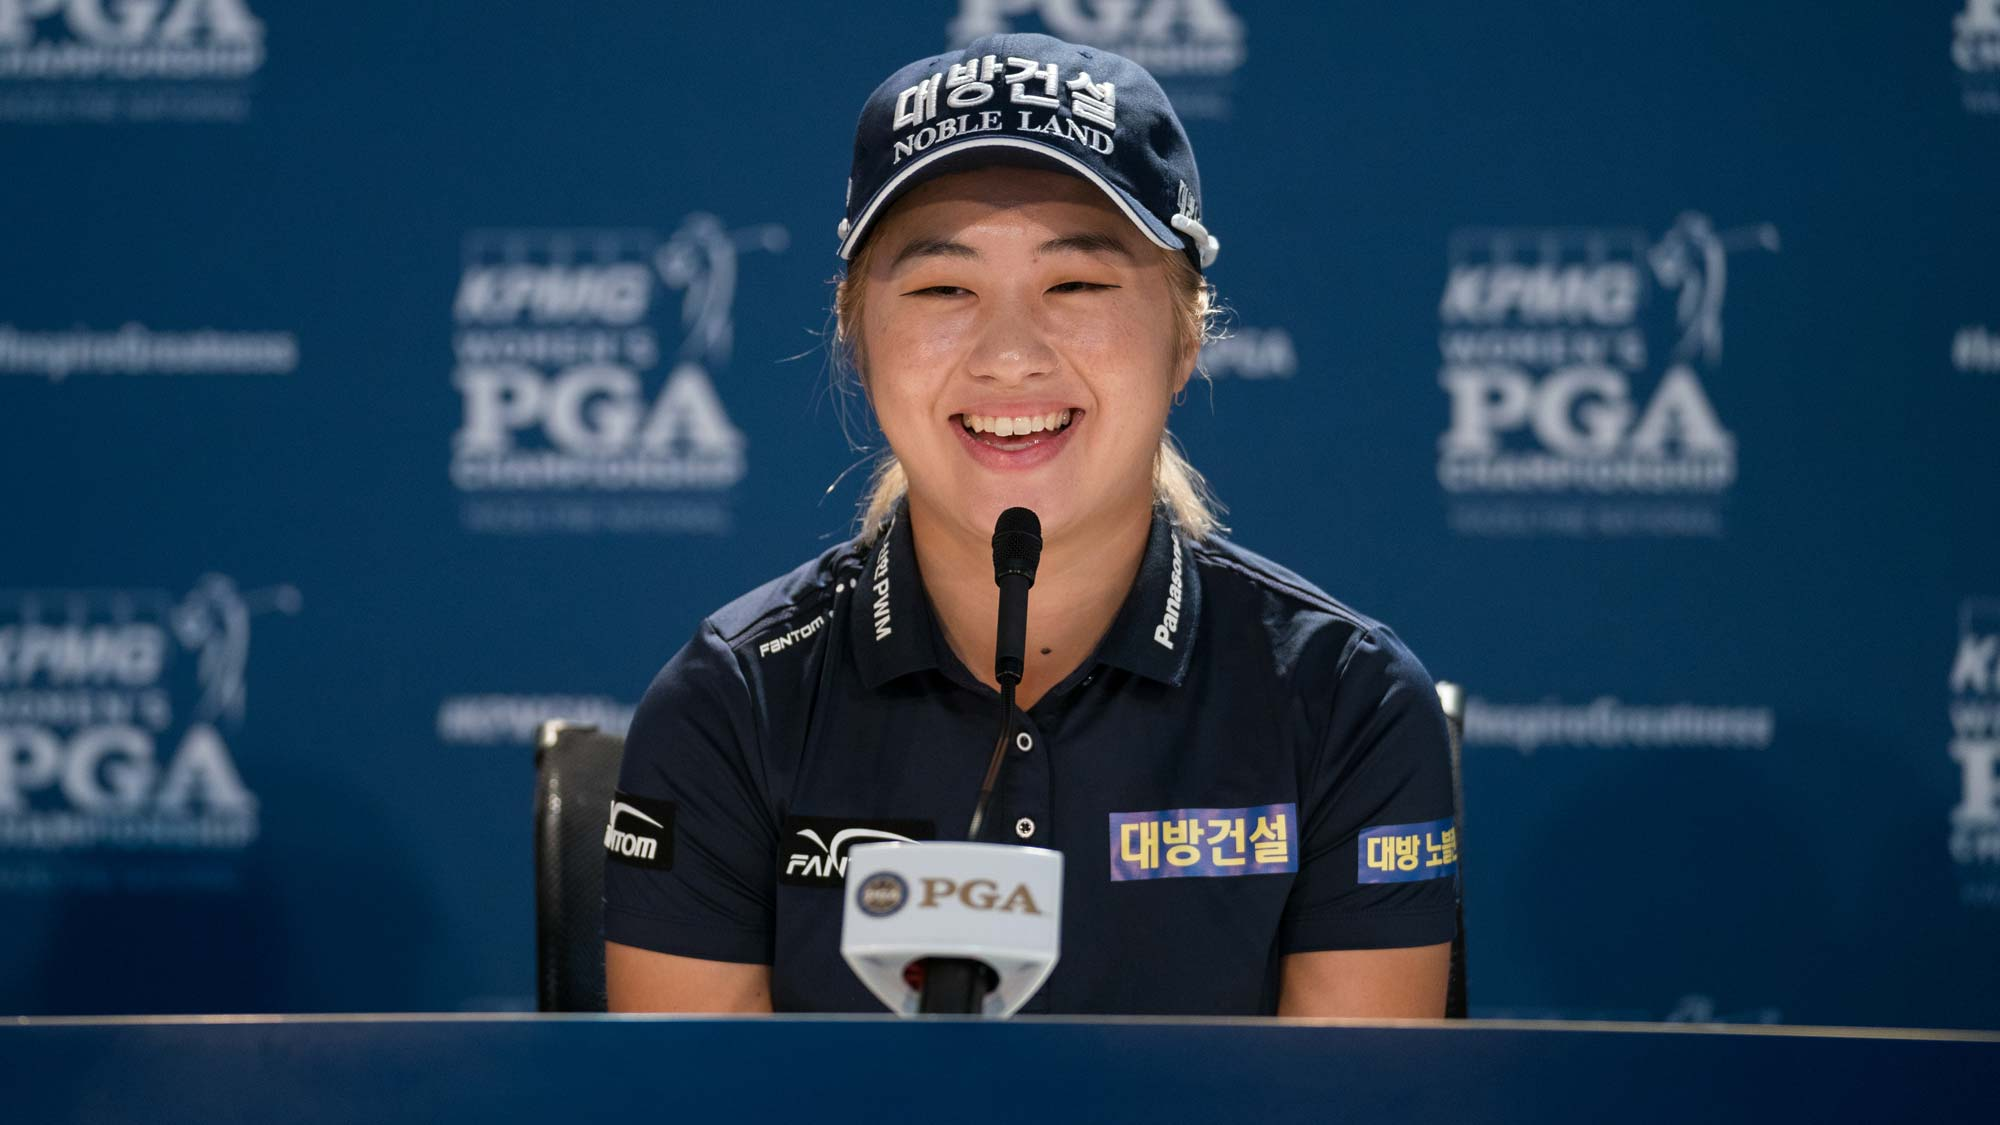 Jeongeun Lee6 of the Republic of Korea speaks at a press conference during the practice round for the 65th KPMG Women's PGA Championship